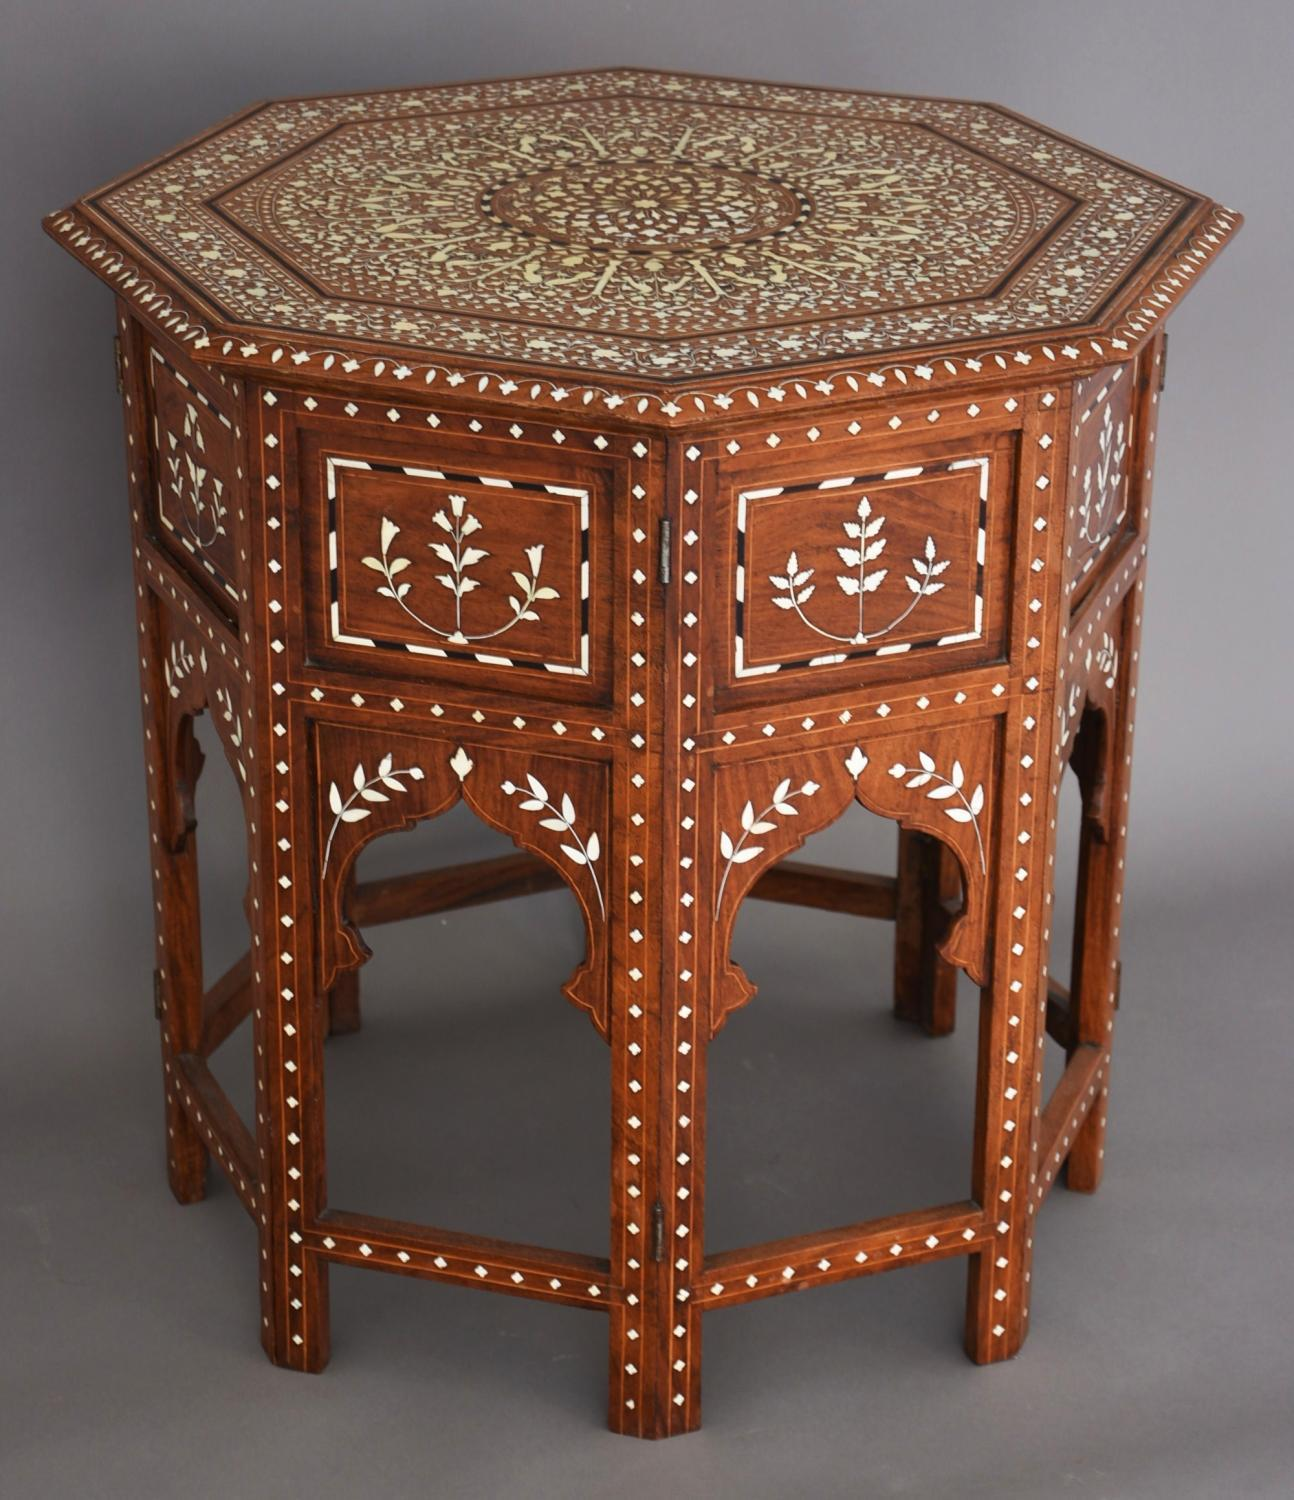 Superb quality inlaid Anglo Indian table